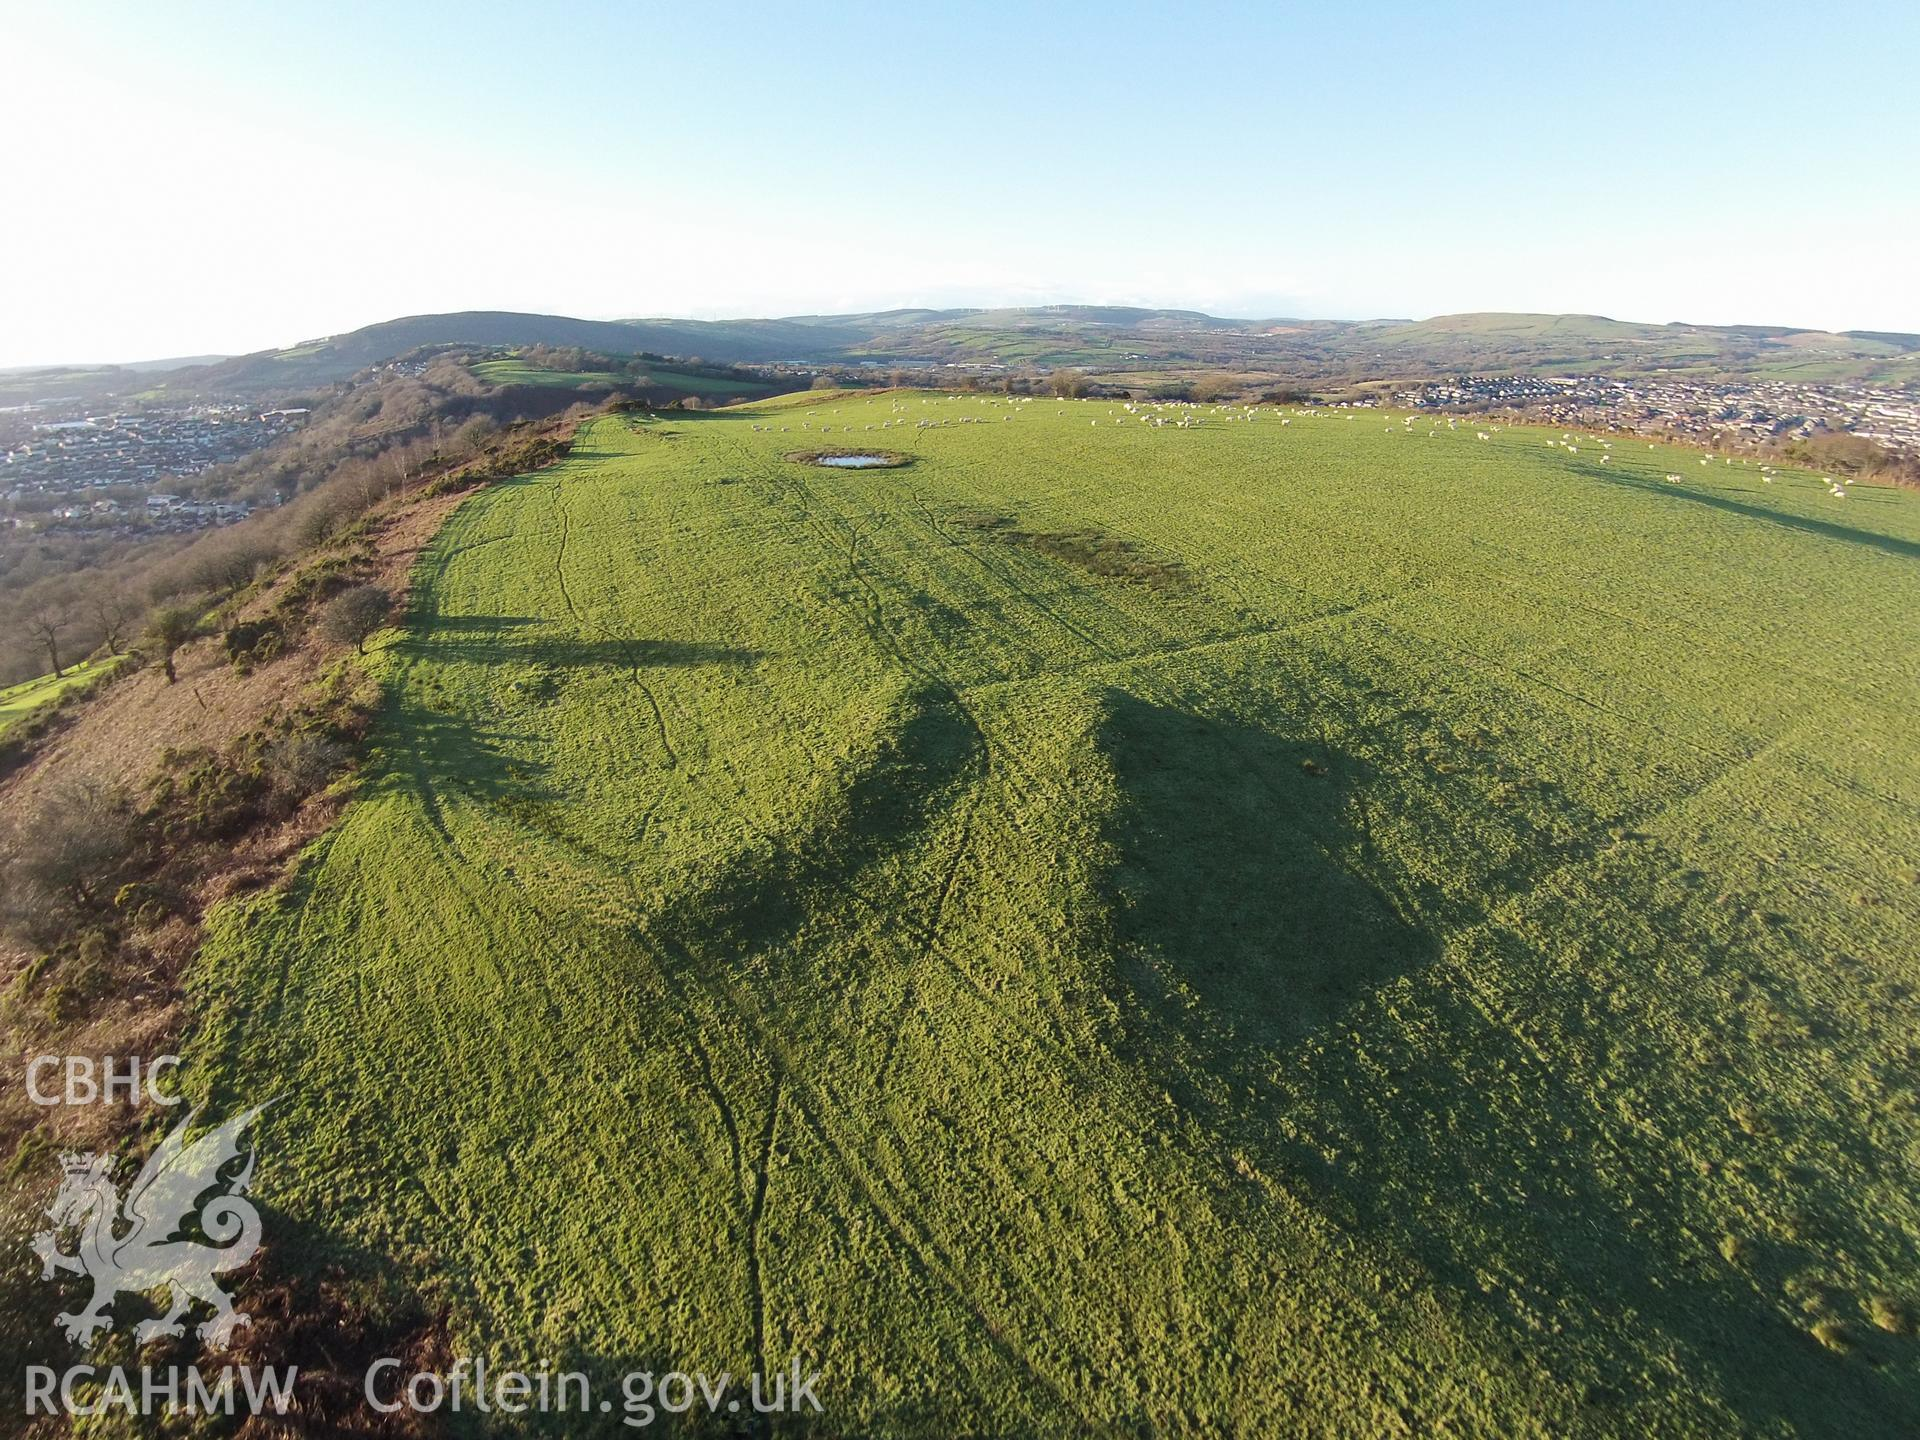 Colour aerial photo showing Caerau Hillfort, taken by Paul R. Davis, 14th January 2016.